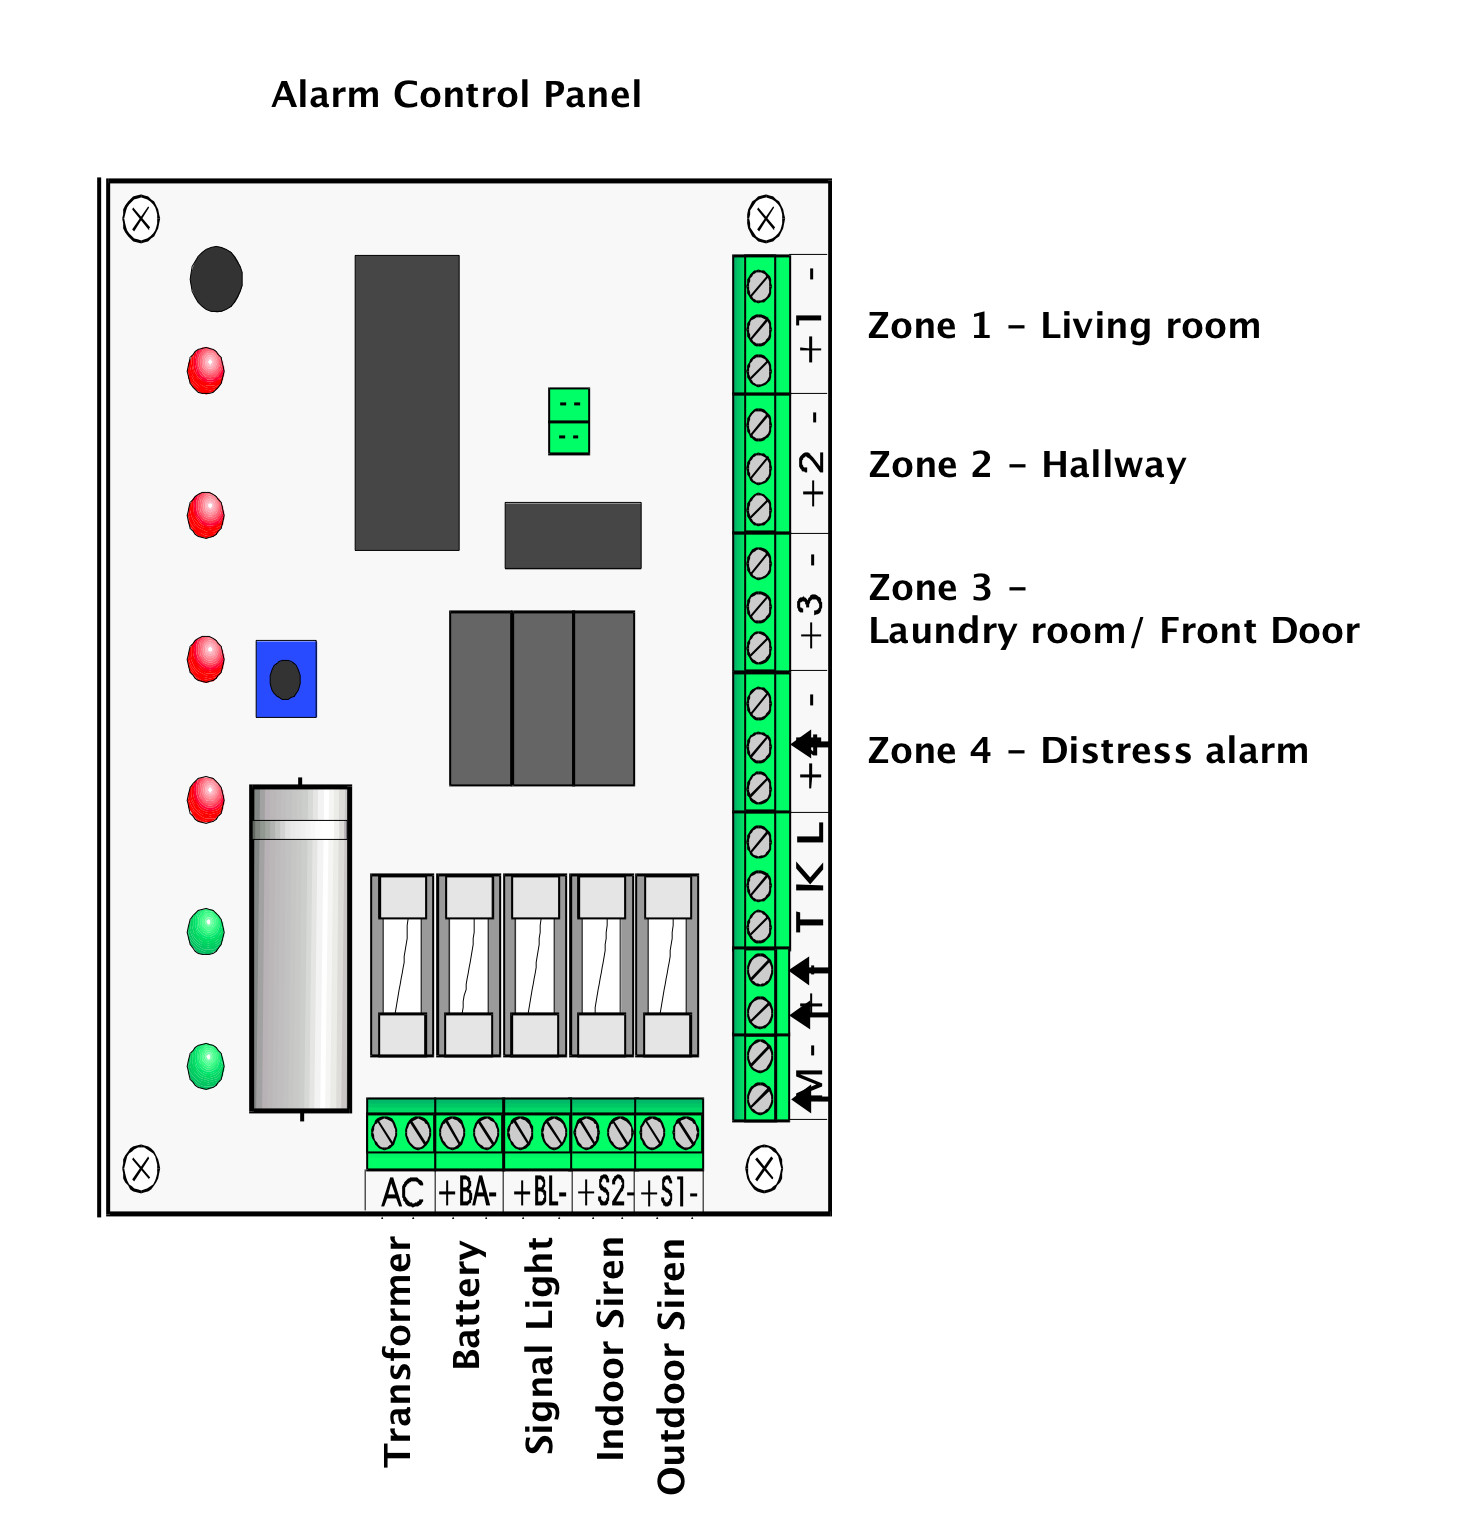 hight resolution of cold room control panel wiring diagram wiring diagram for alarm keypad save home security system